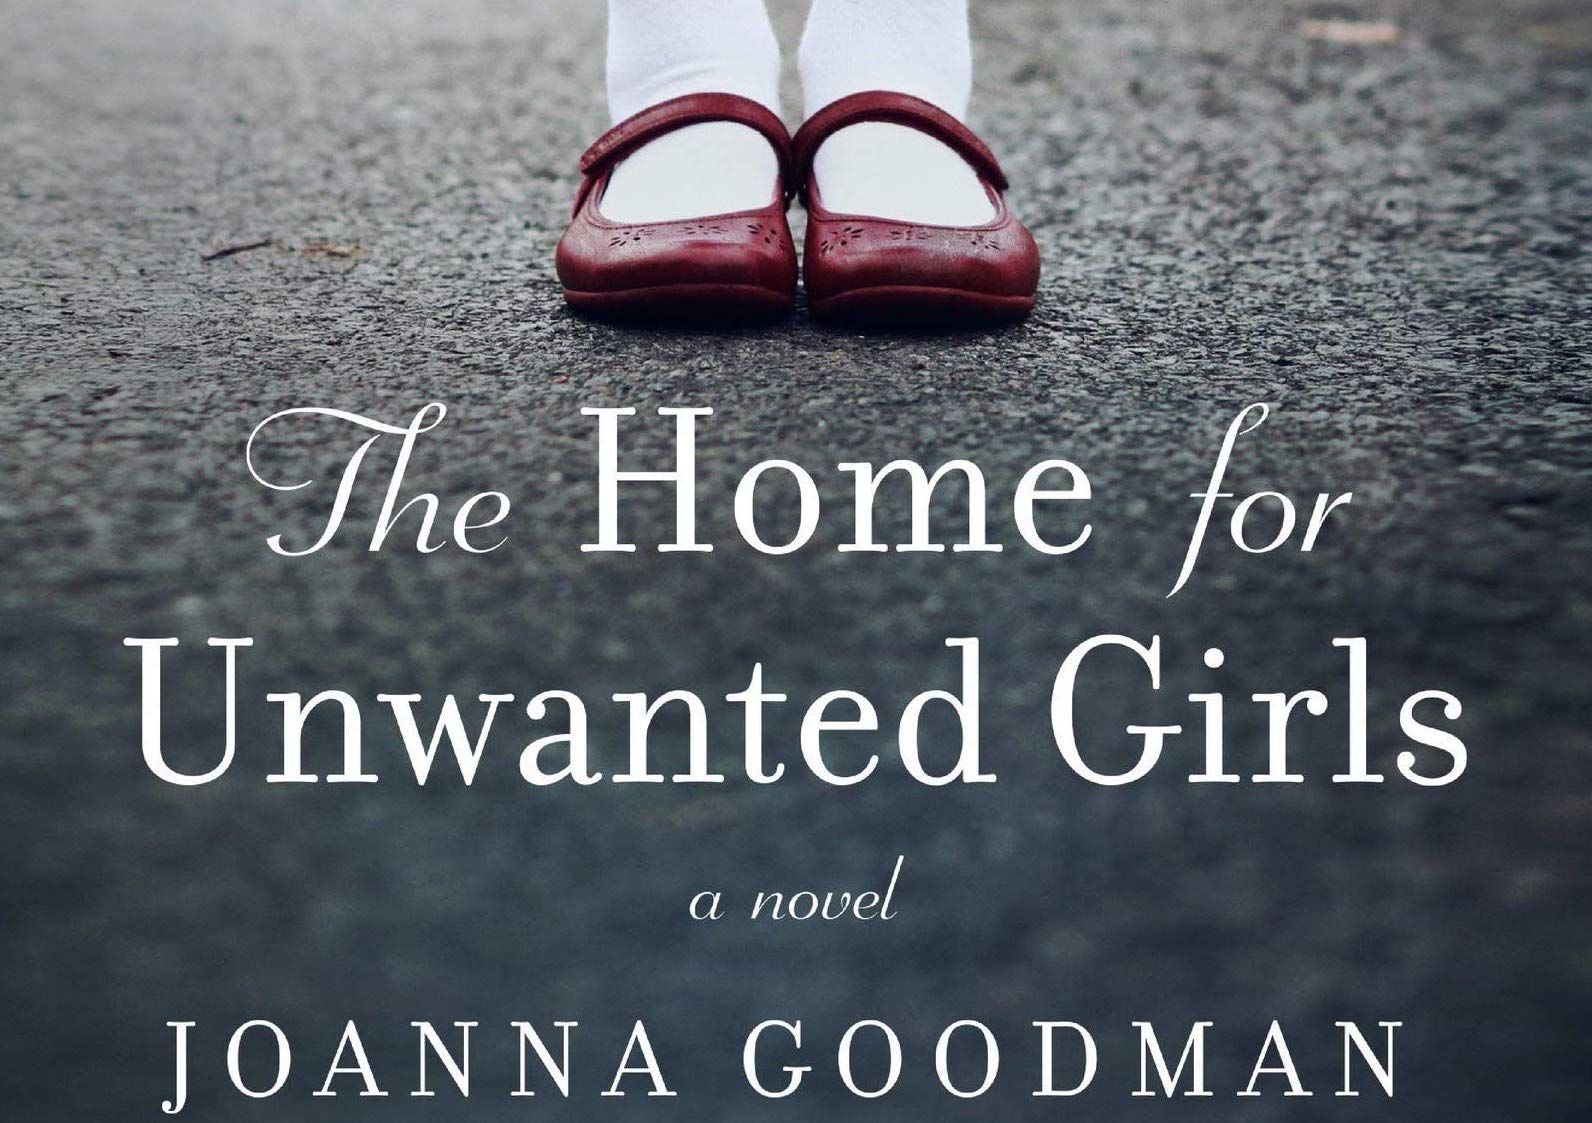 Review: The Home for Unwanted Girls